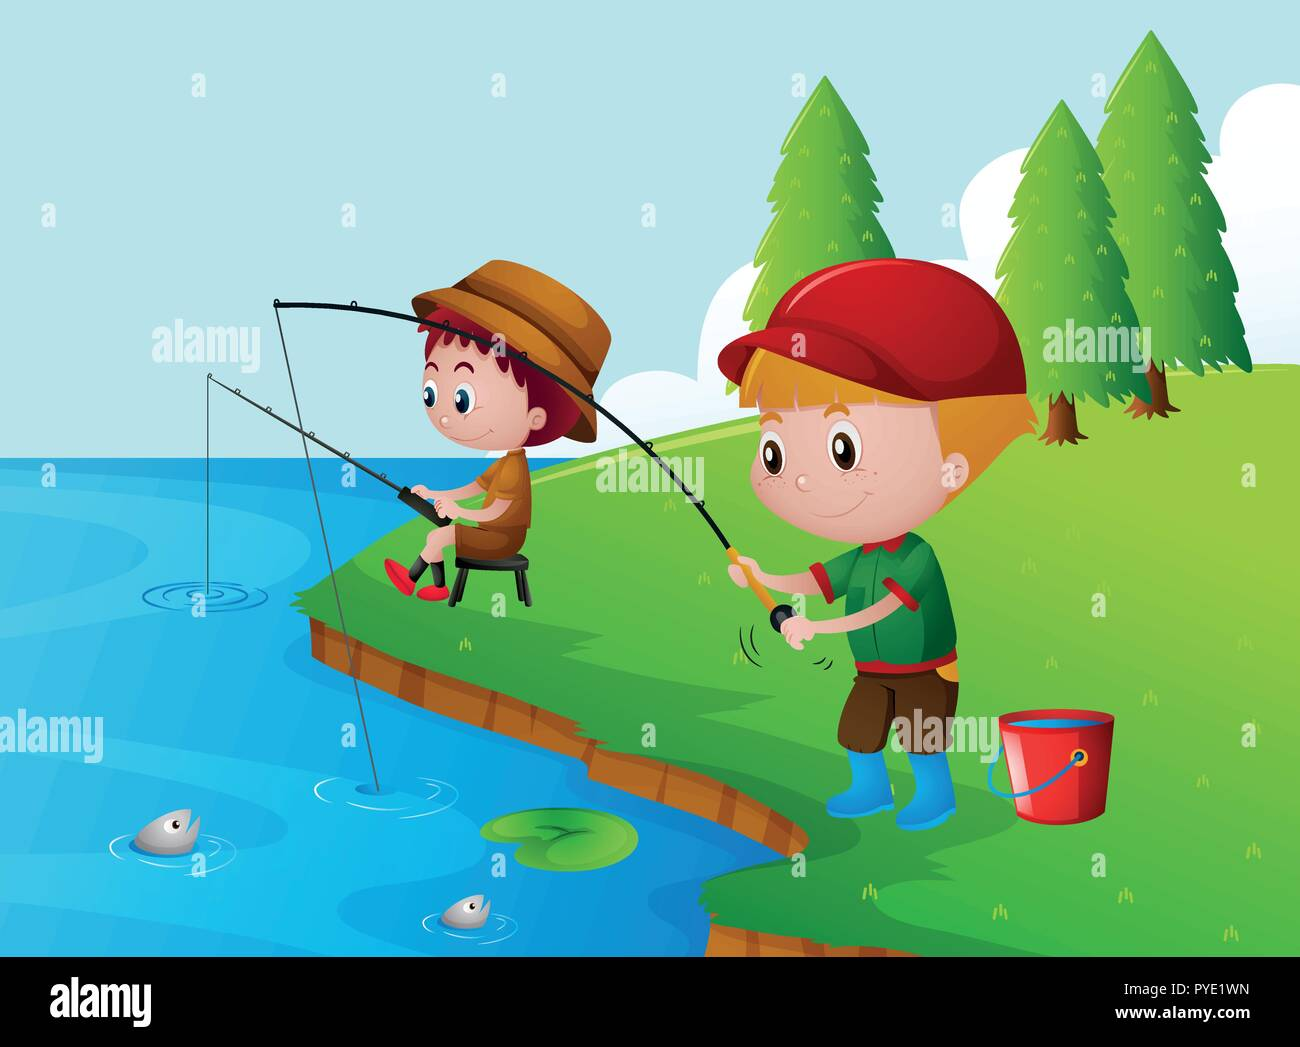 Two Boys Fishing By The River Illustration Stock Vector Image Art Alamy